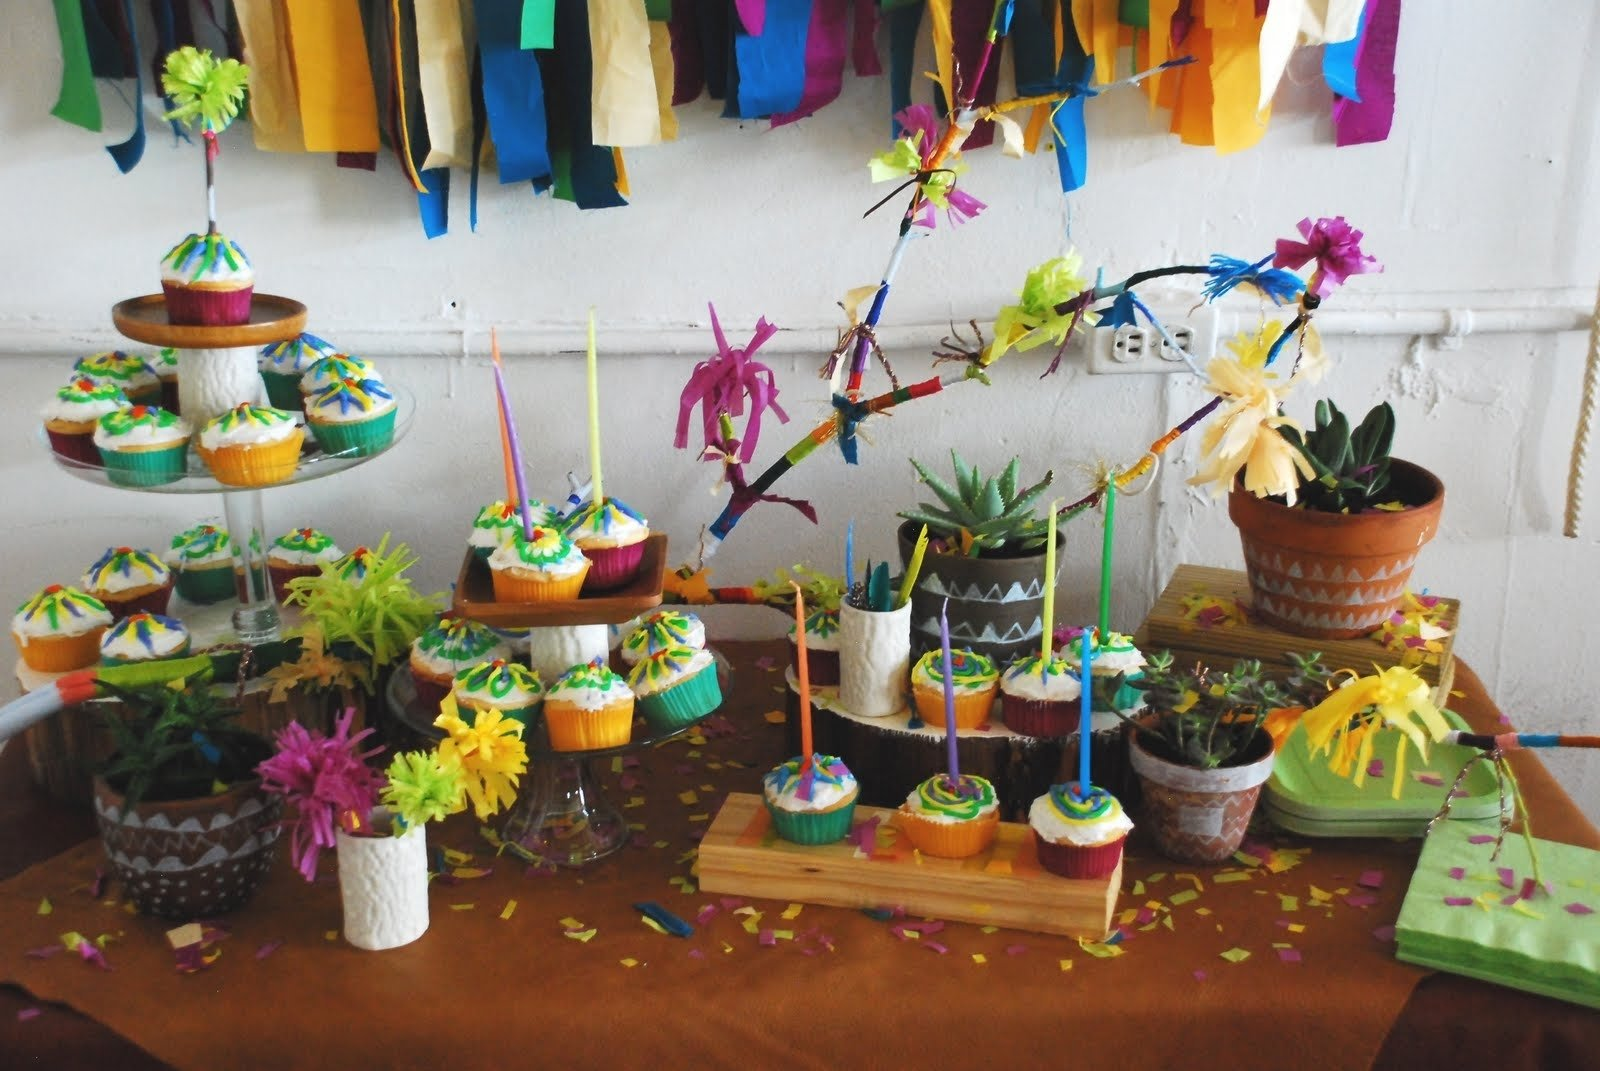 10 Trendy 13 Year Old Birthday Party Ideas For Boys themes birthday good ideas for a 13 year old birthday party boy 8 2020